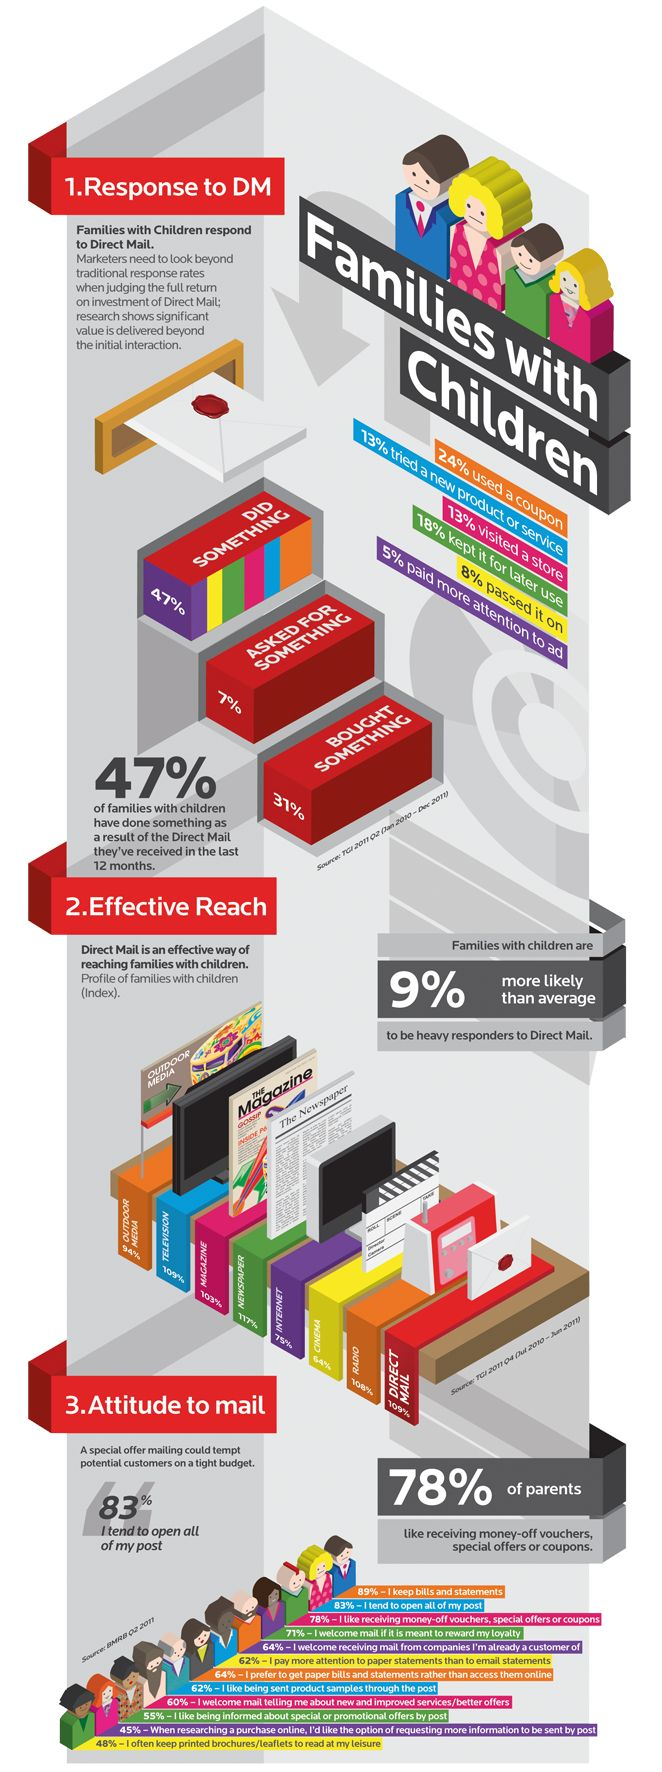 Direct mail is effective for families with children, as